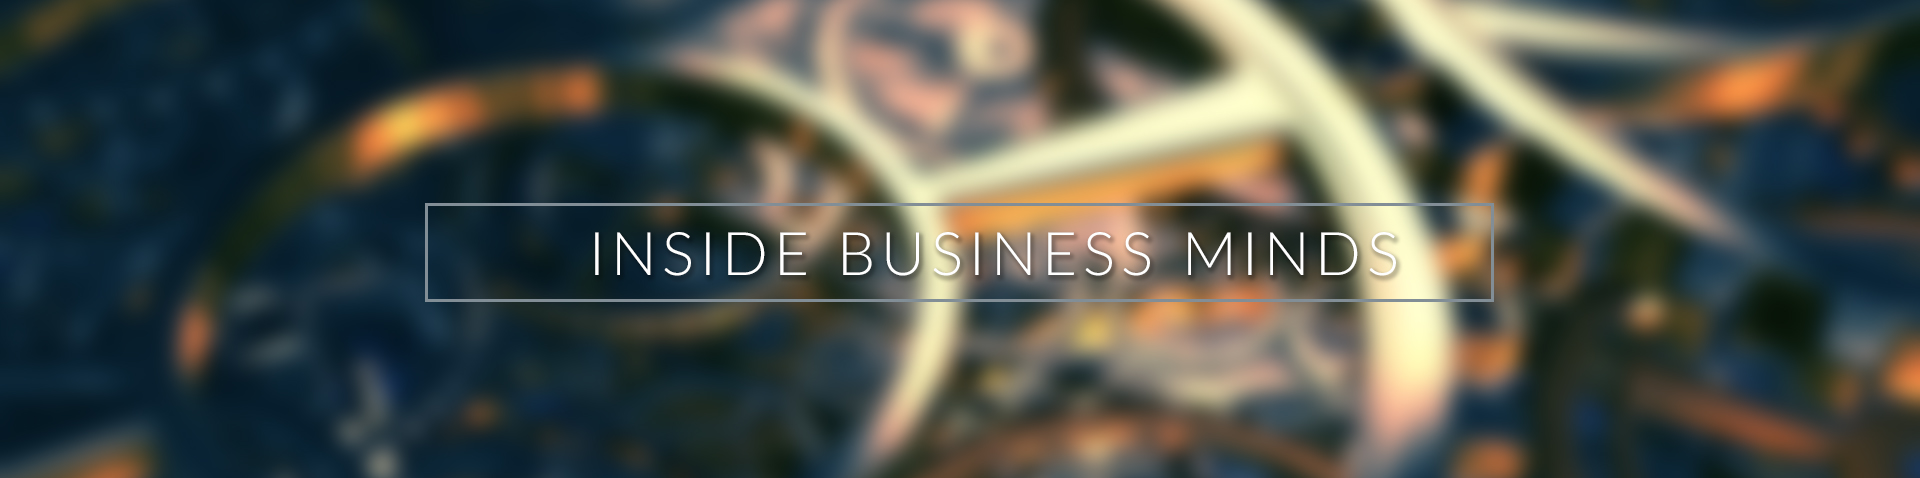 Inside Business Minds by Johnathan Andrews